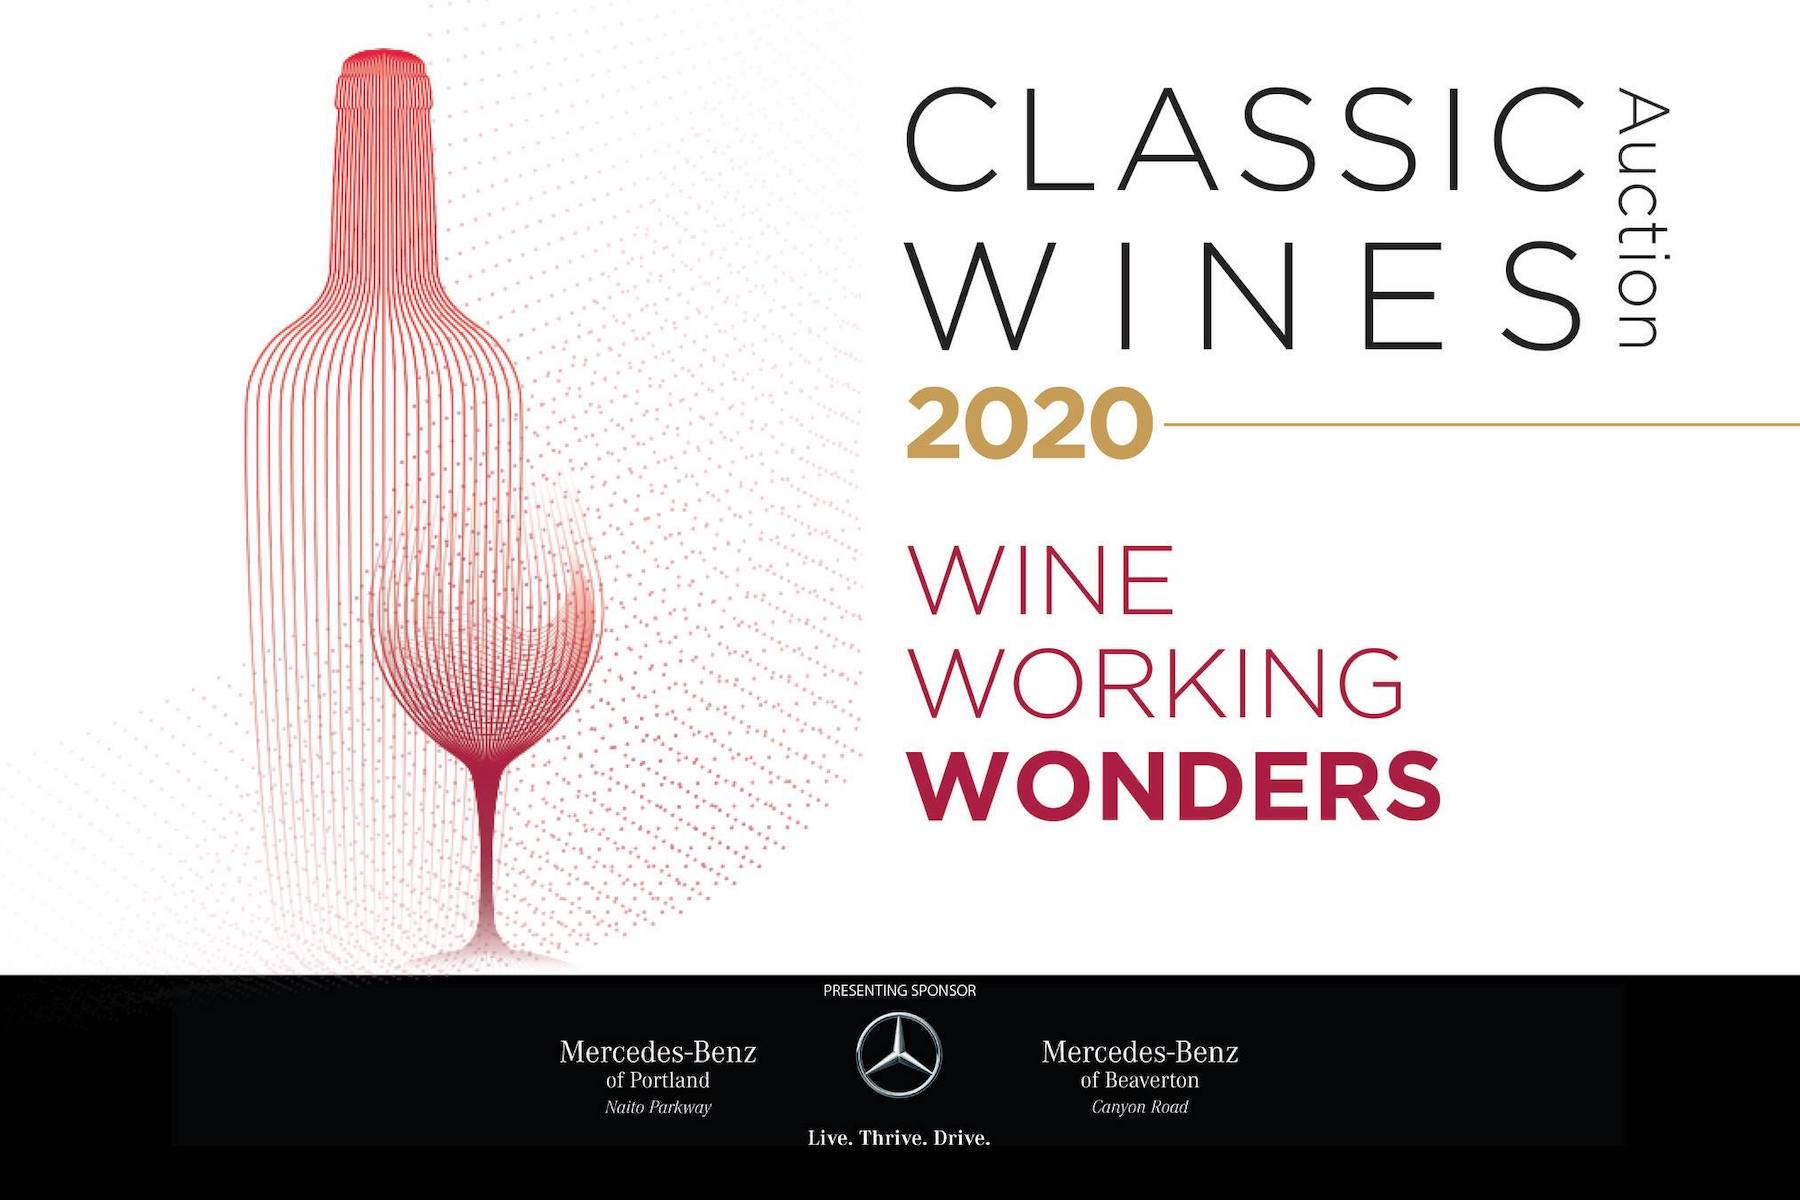 classic wines auction 2020 poster - Classic Wines Auction